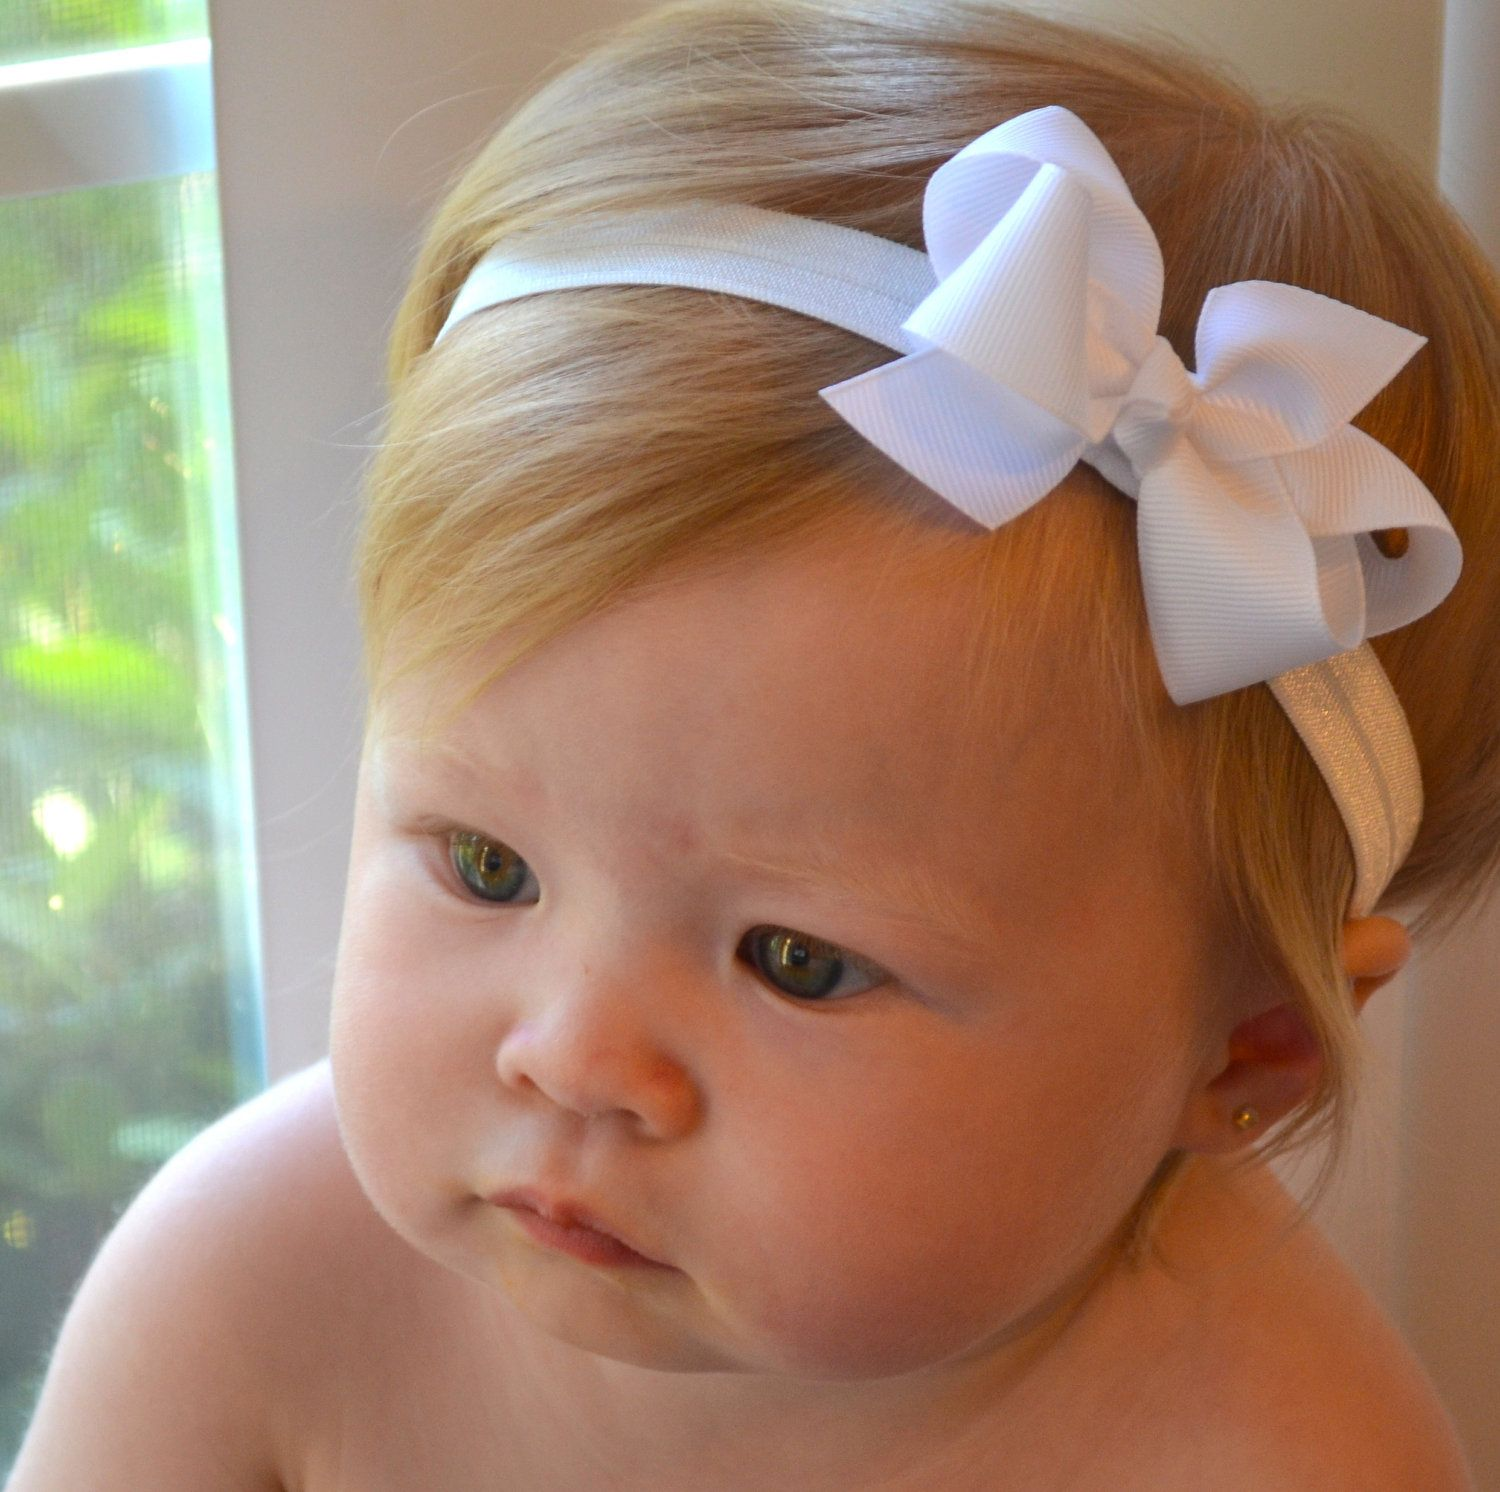 Find great deals on eBay for baby bows and headbands. Shop with confidence.